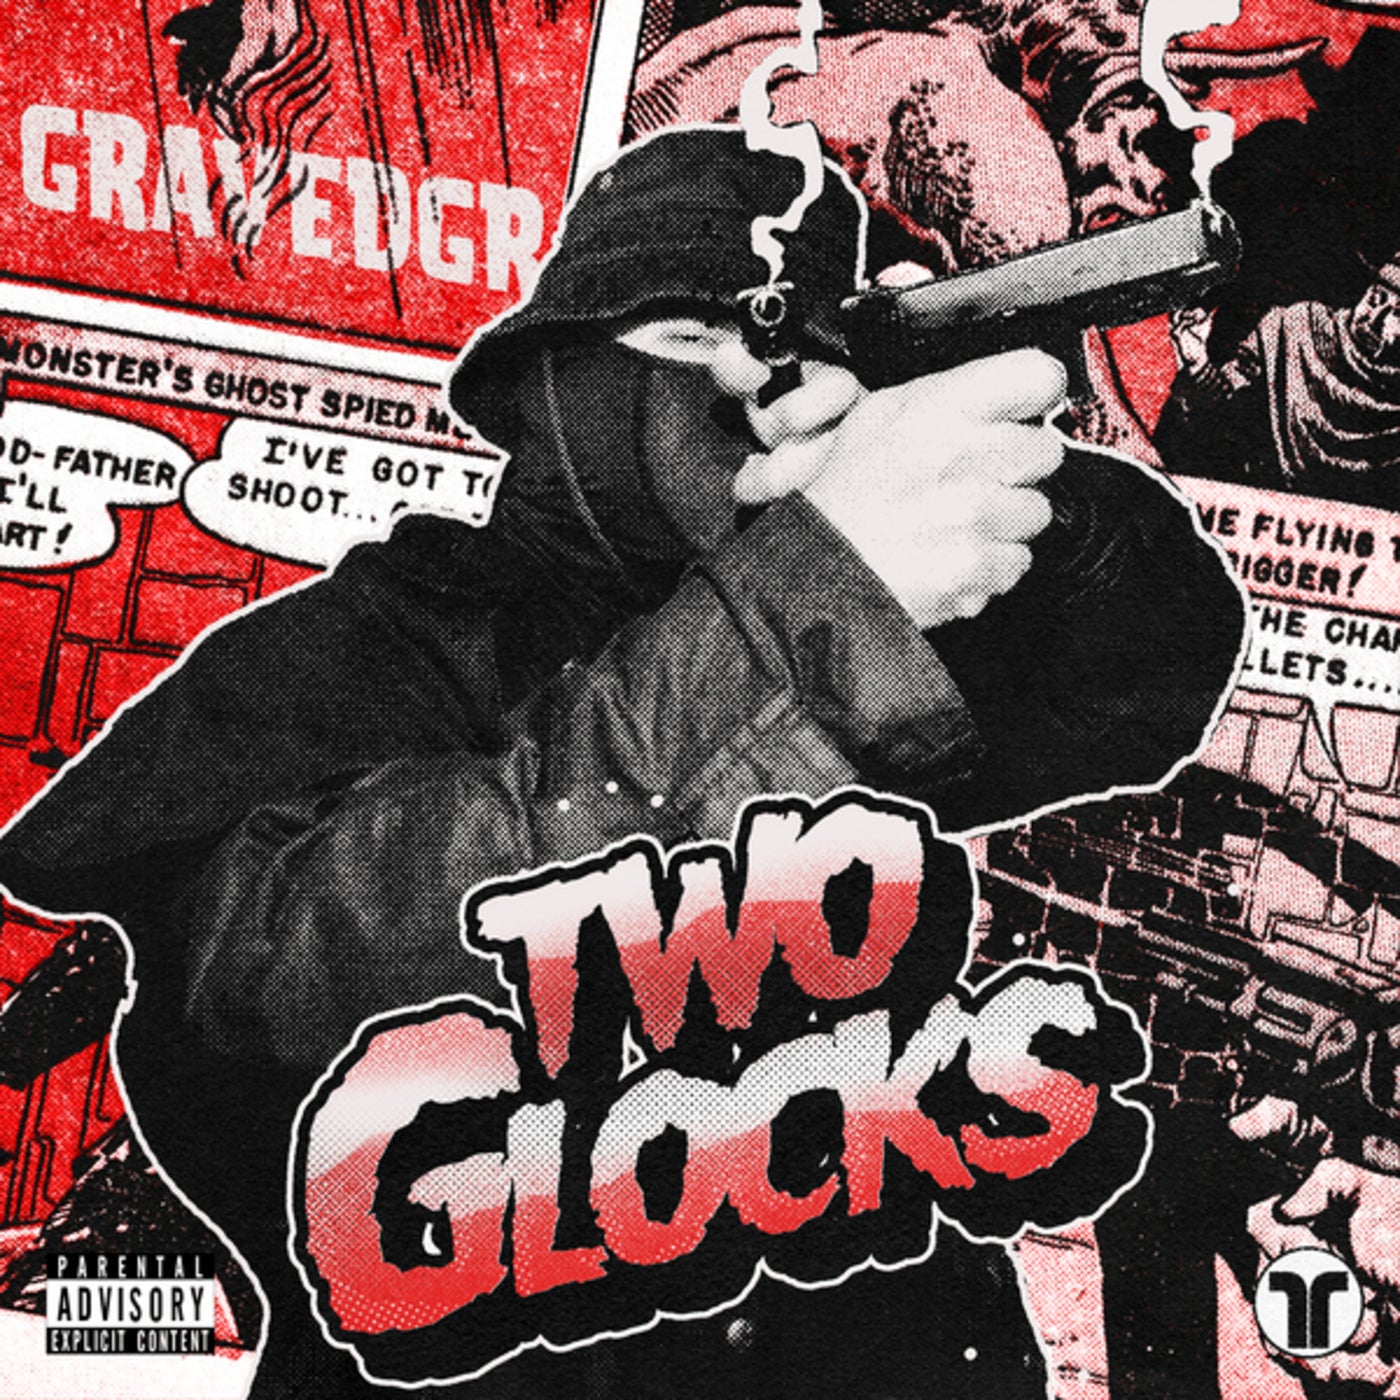 Two Glocks